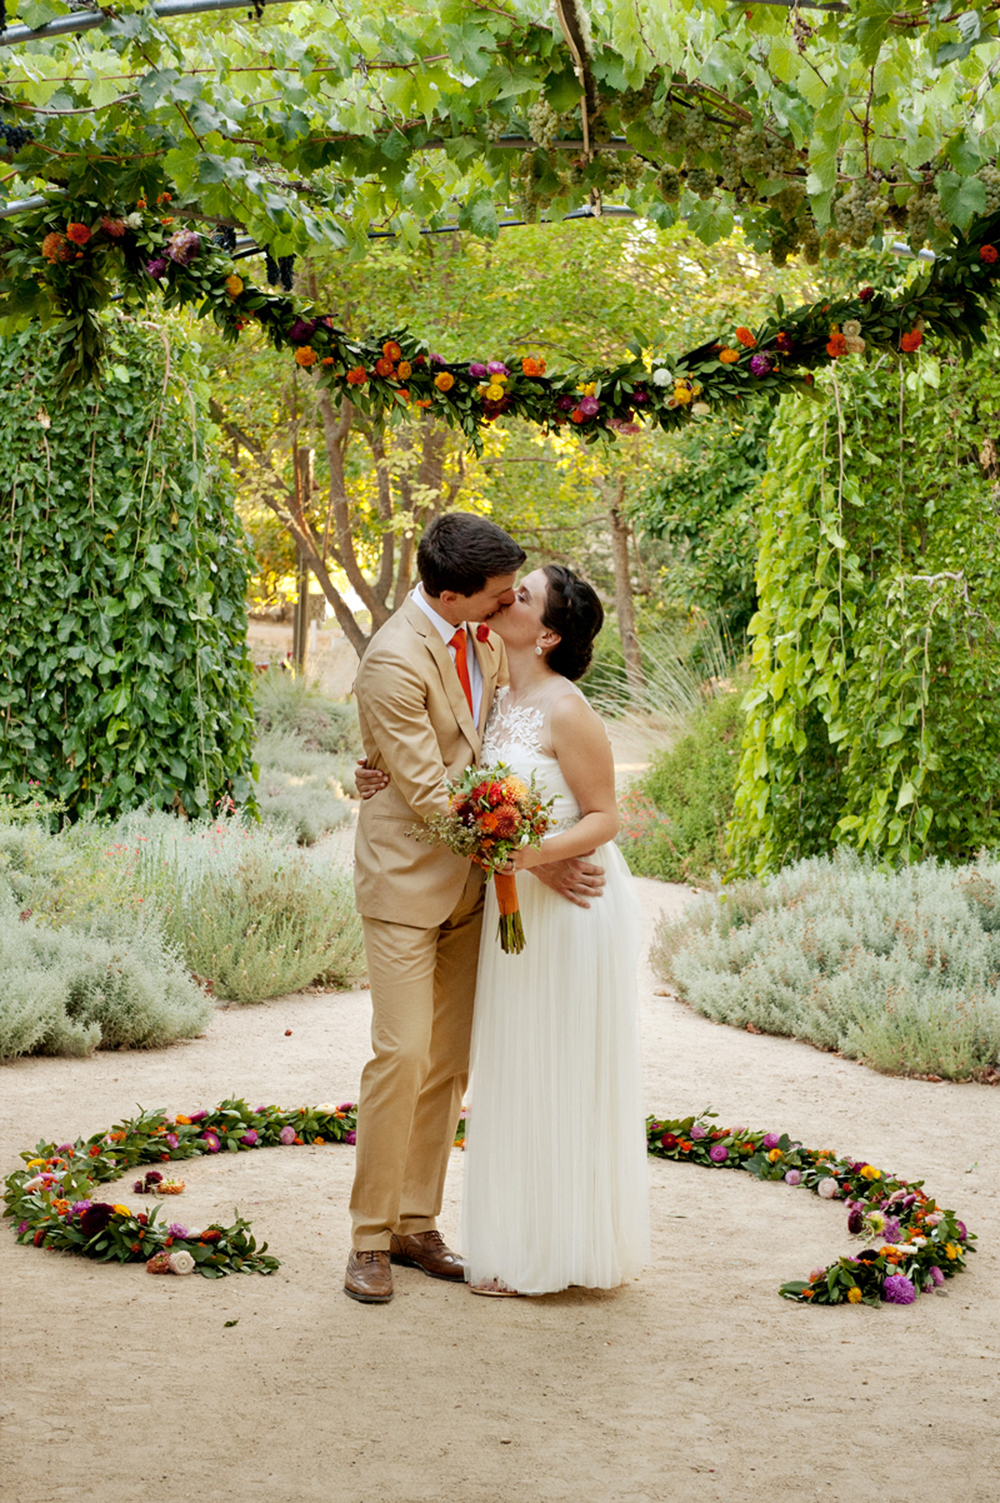 Campovida_Wedding_Ceremony_Flowers.jpg